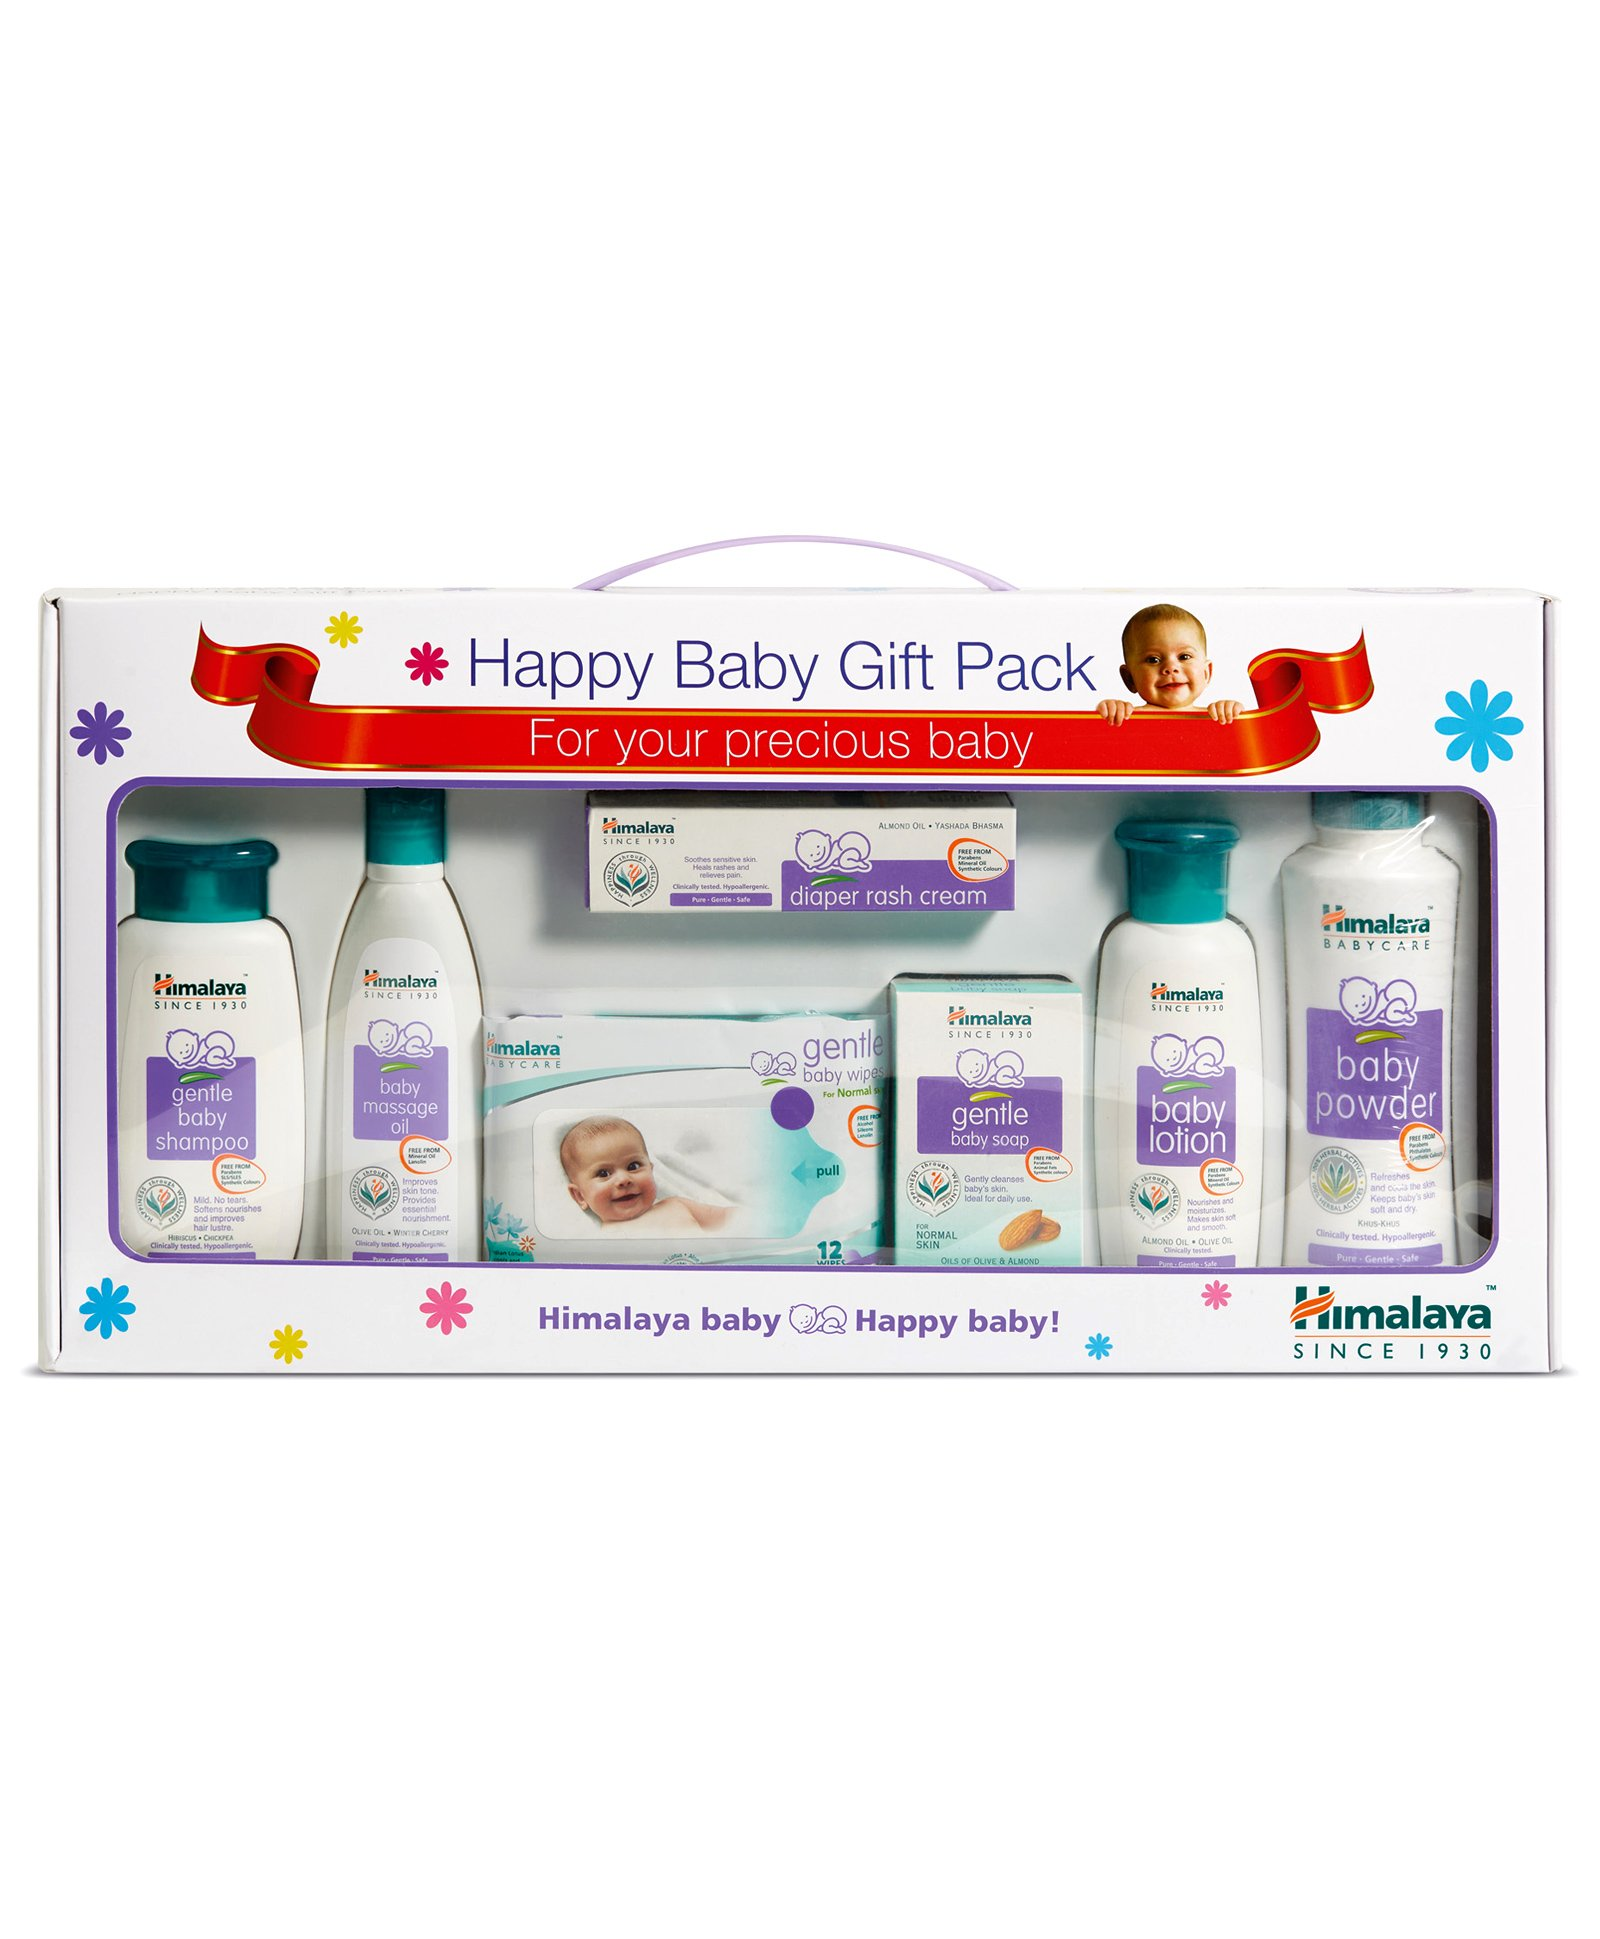 Himalaya Herbal Babycare Gift Pack